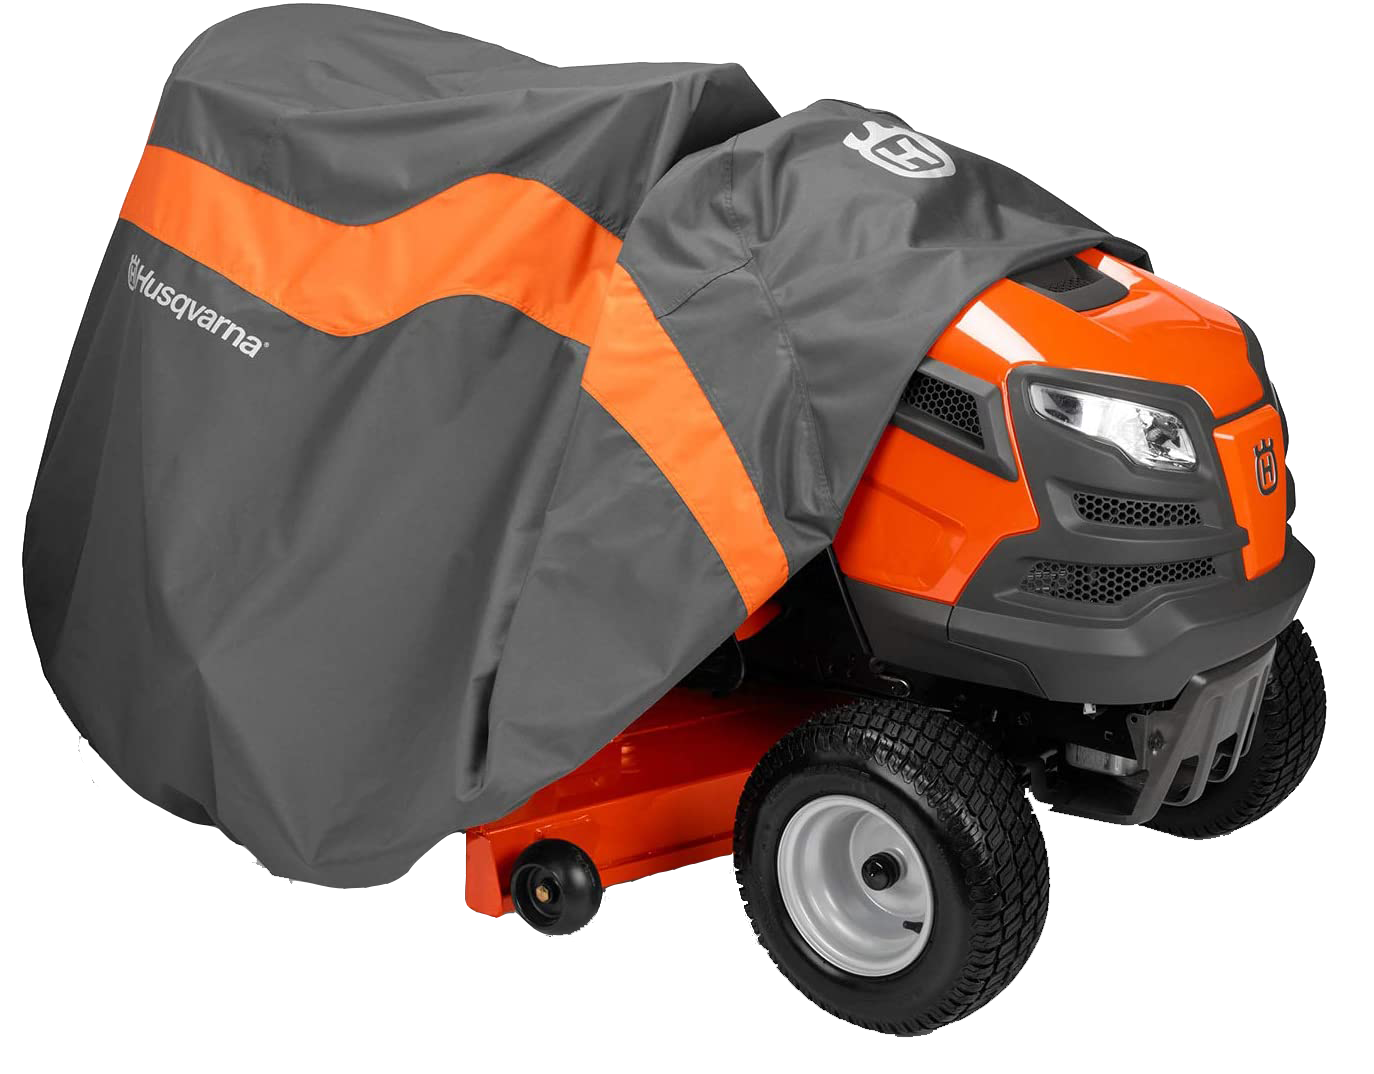 husqvarna 254f mower cover